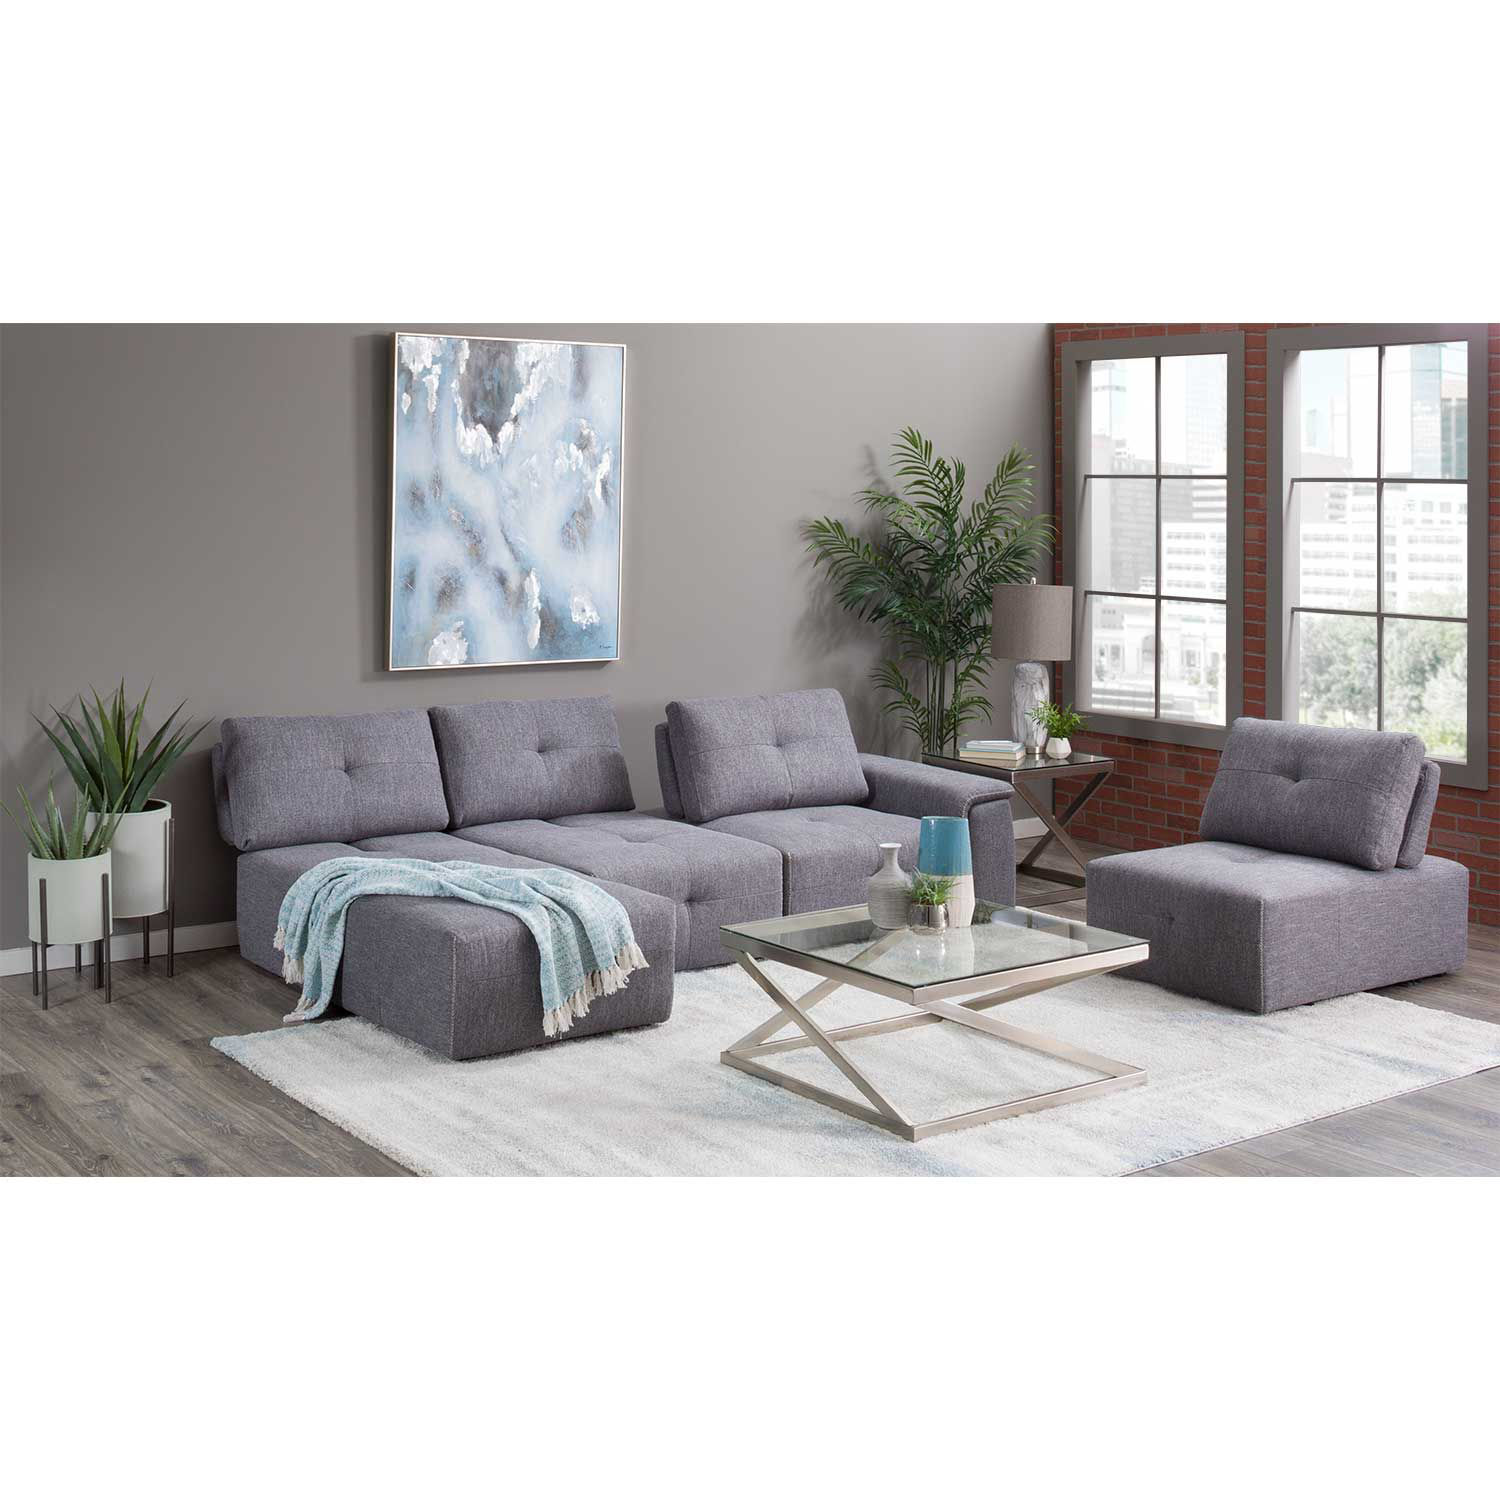 Picture of Adapt Gray 4 Piece Sectional with Chaise